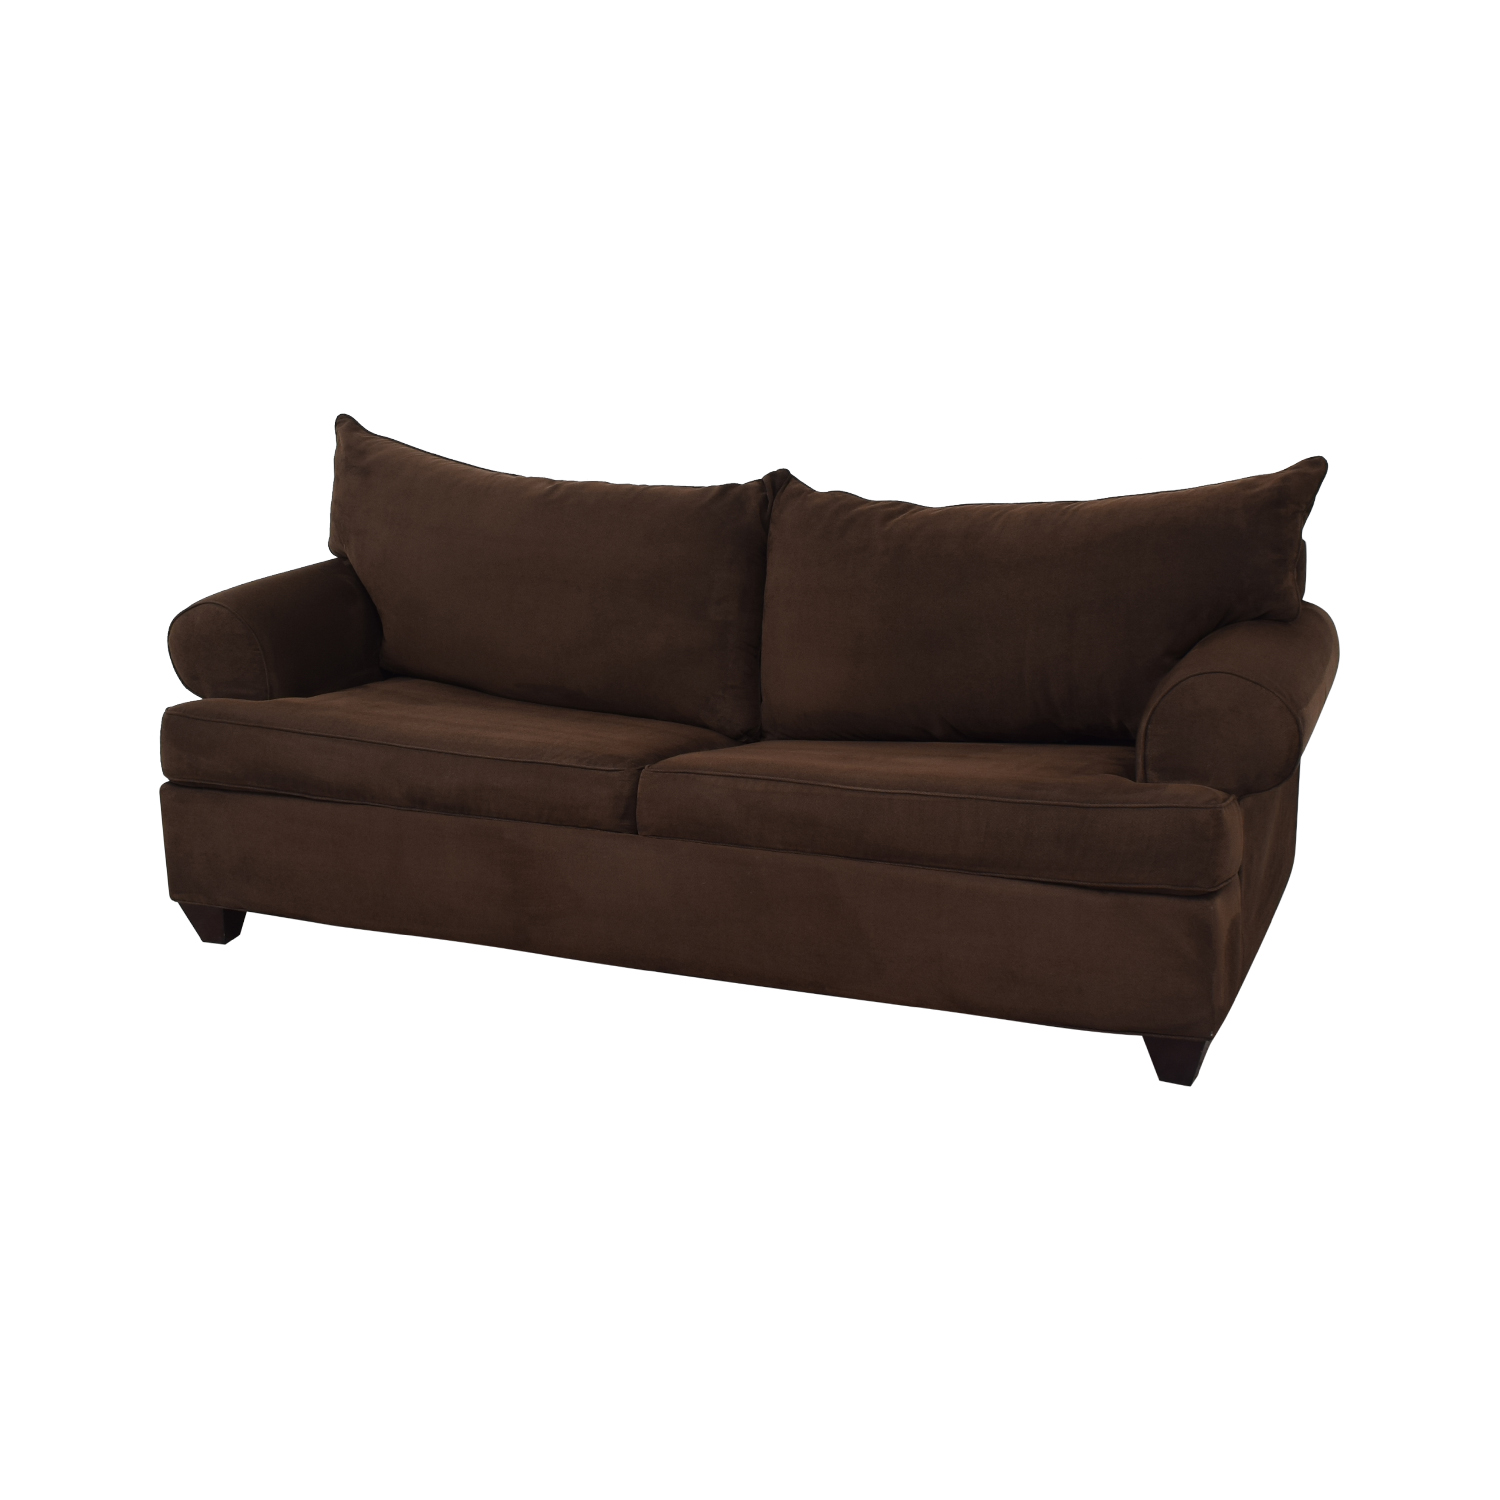 Raymour & Flanigan Raymour & Flanigan Two Cushion Sleeper Sofa coupon